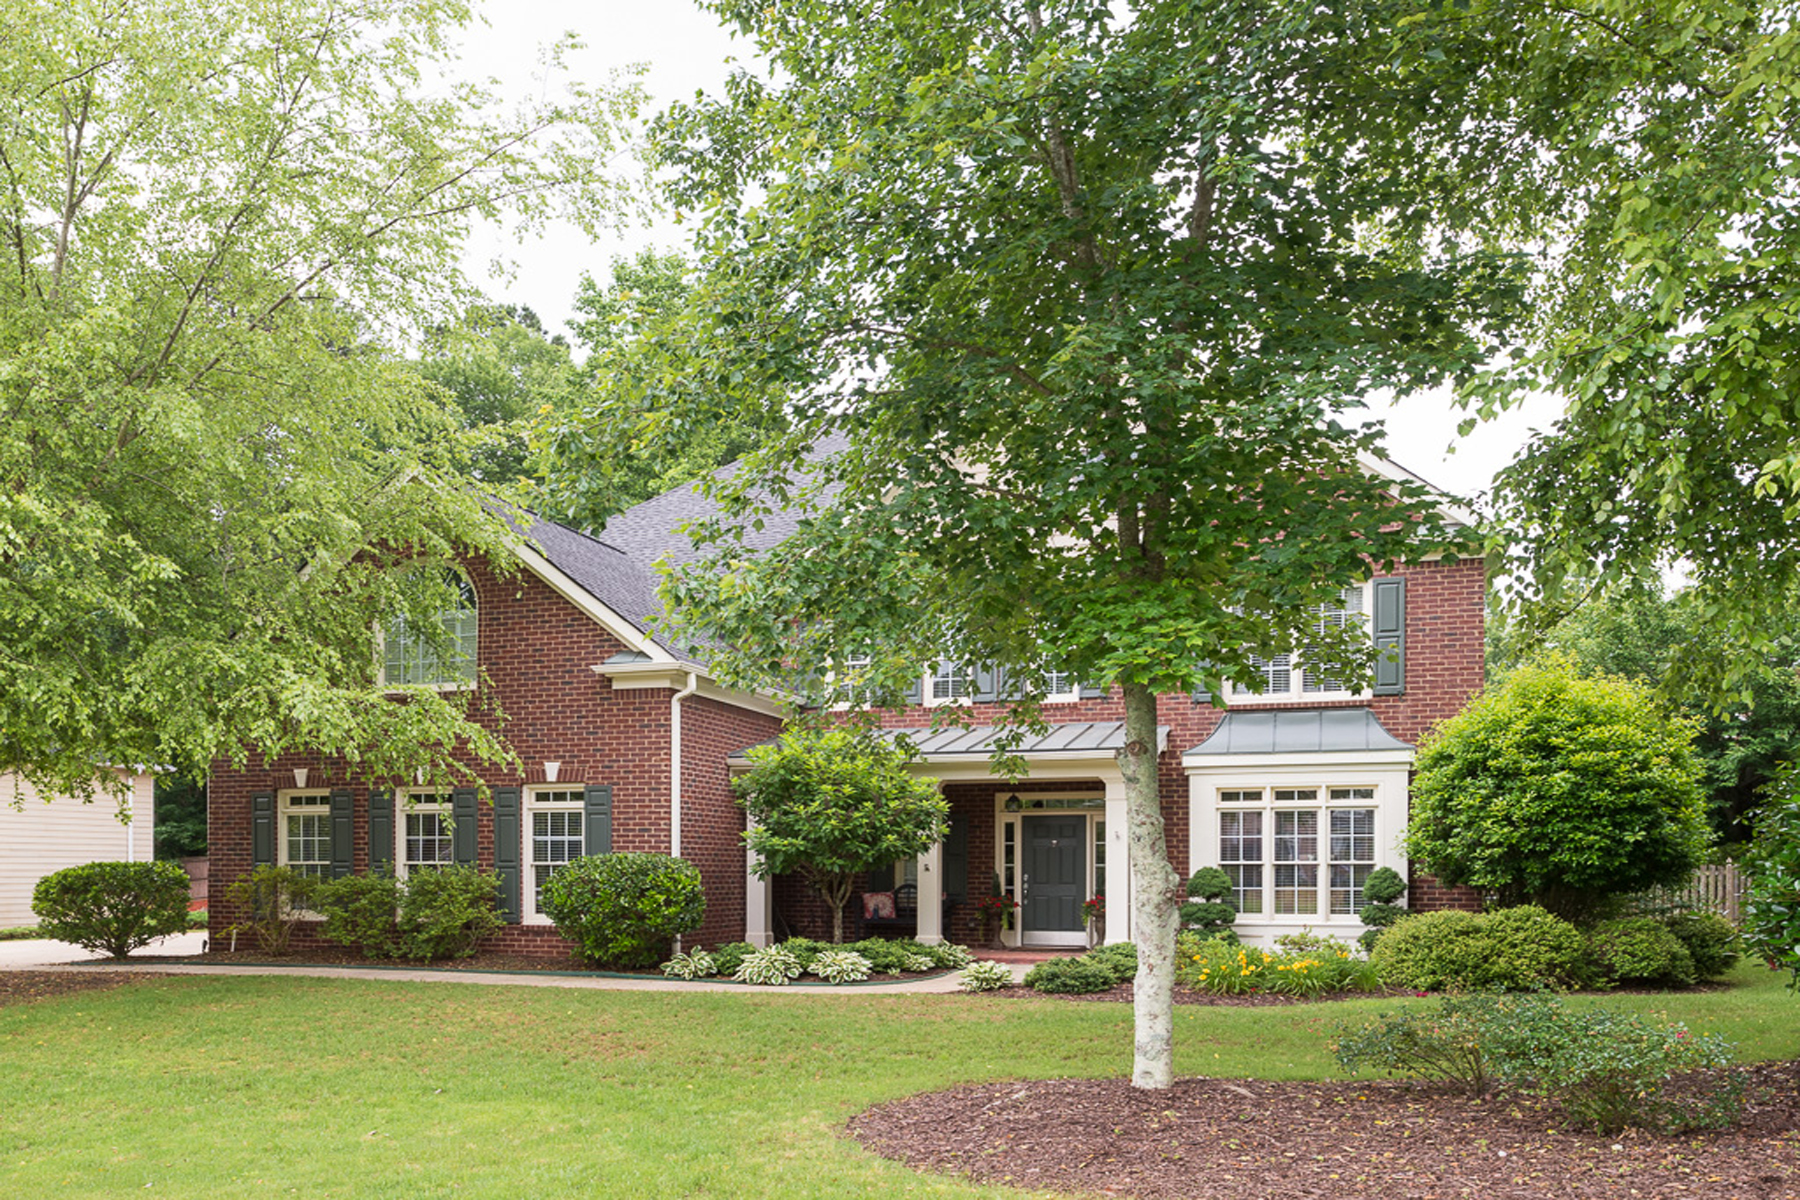 Single Family Home for Sale at Meticulously Maintained In The Heart Of Crabapple 3005 Saint Michelle Way Alpharetta, Georgia 30004 United States